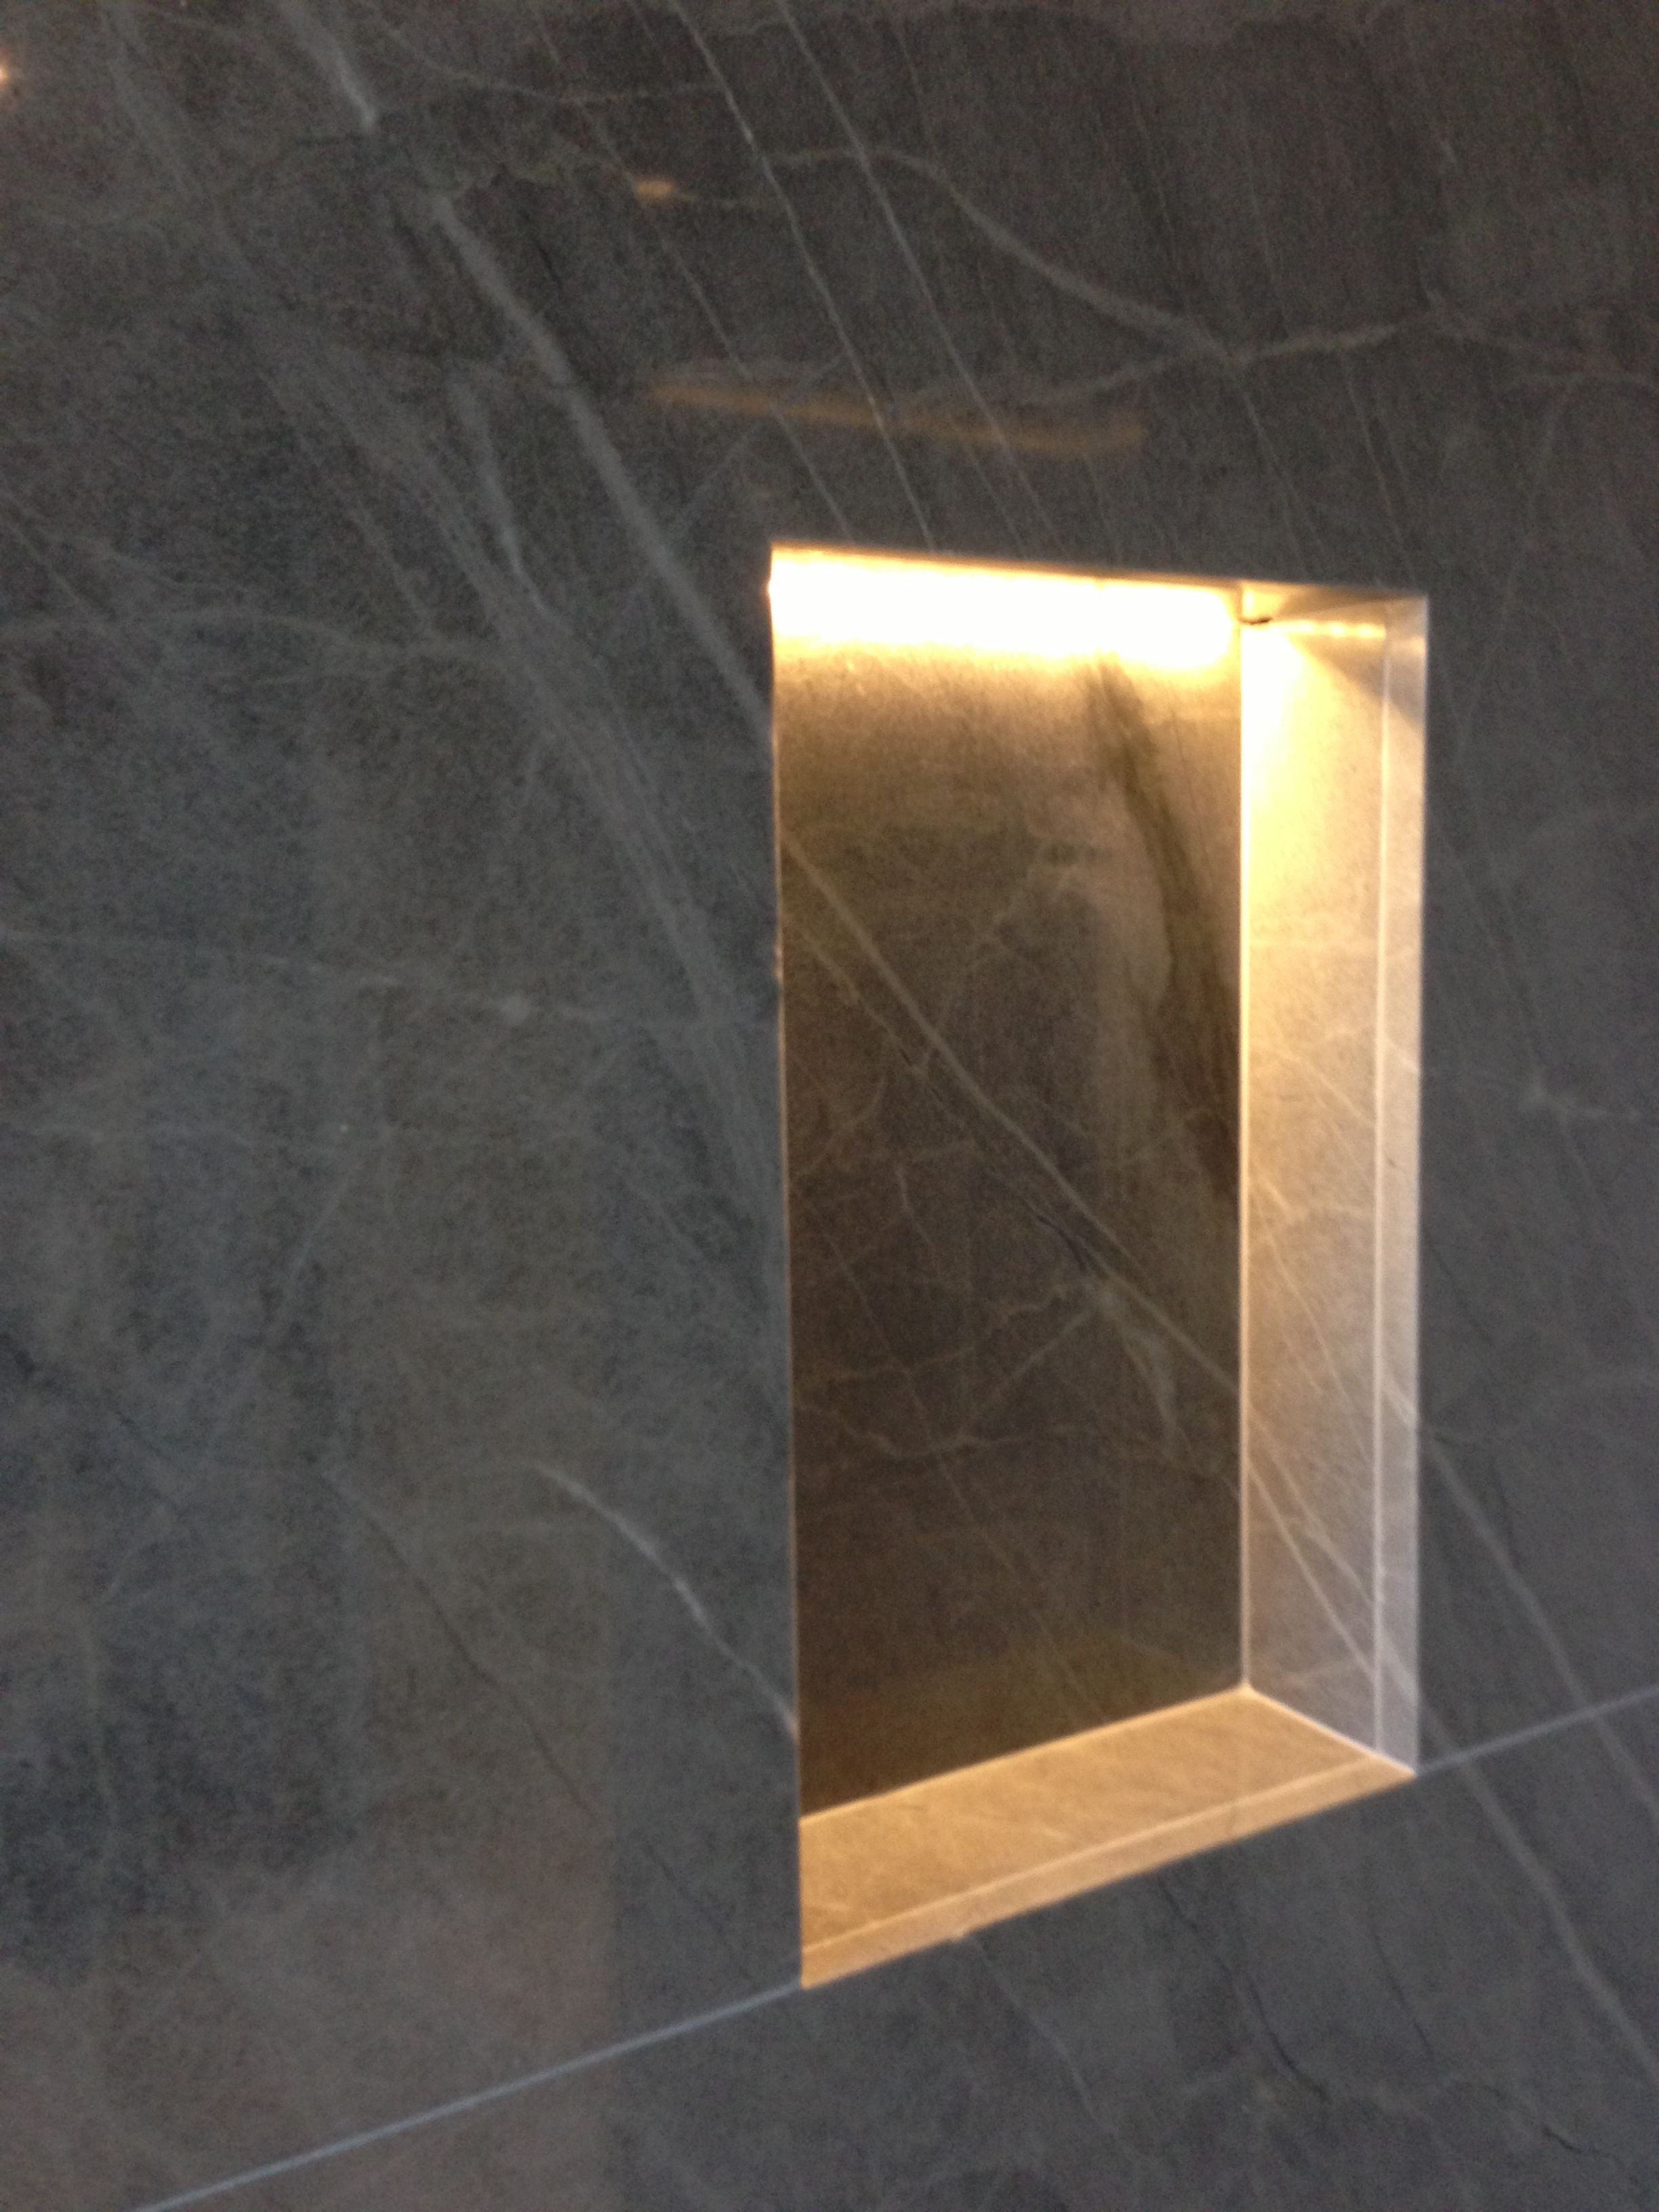 Recessed shower lighting tilesshower lights pinterest recessed shower lighting aloadofball Gallery